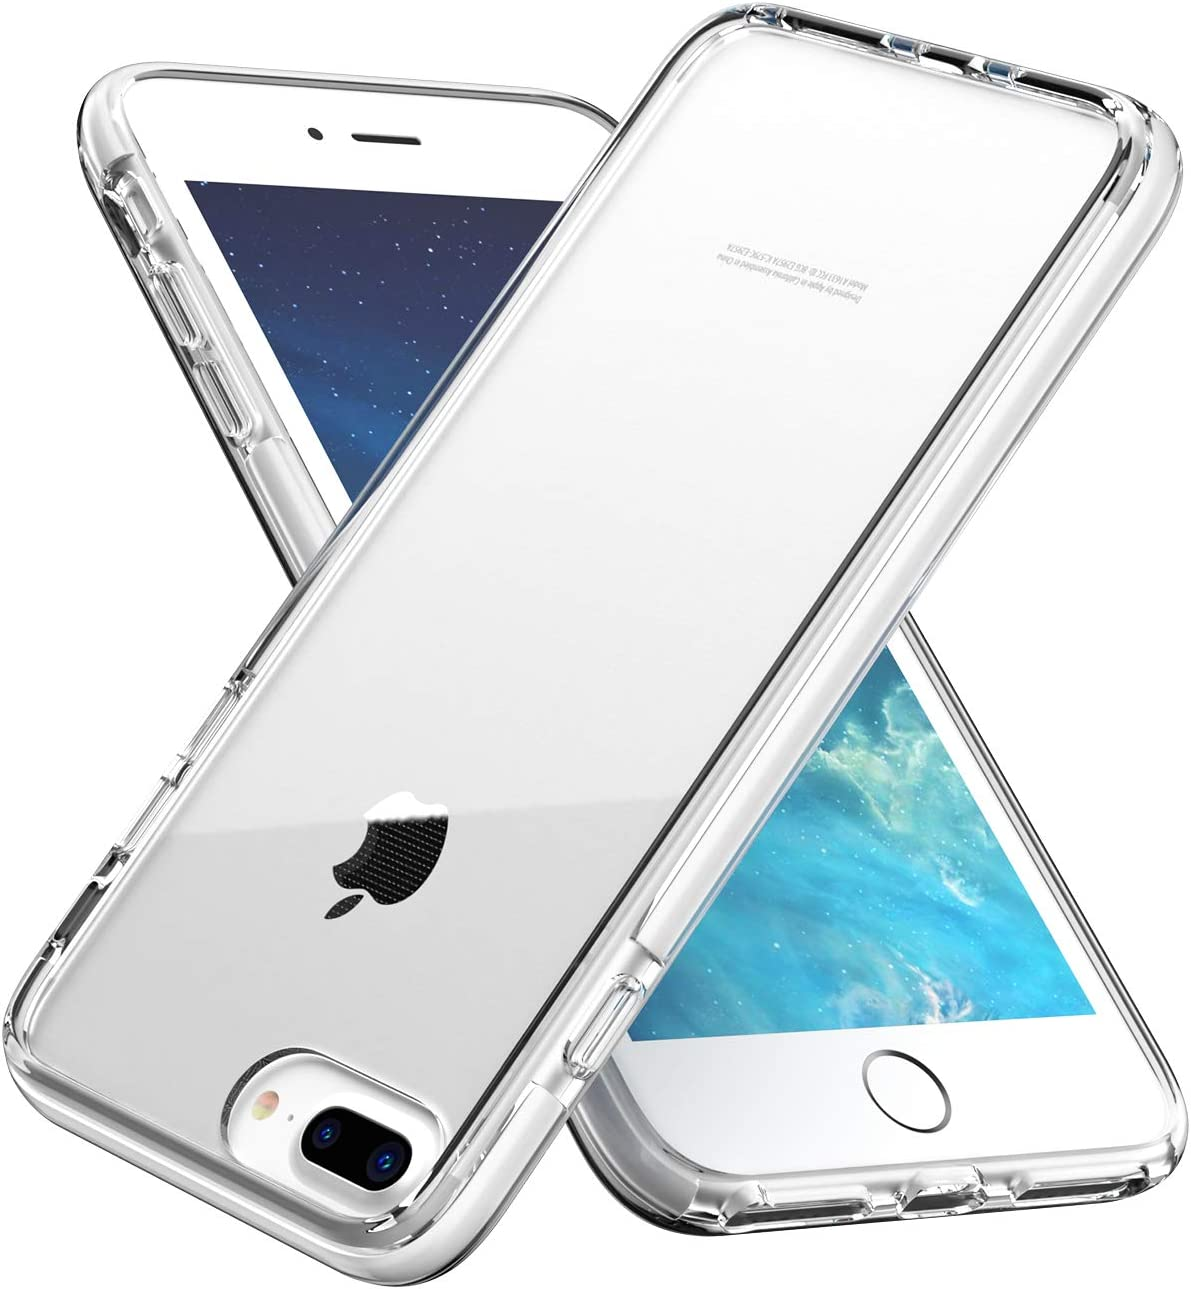 EYZUTAK Crystal Clear Case for iPhone 6 Plus 6S Plus 7 Plus 8 Plus,Anti-Yellow Ultra Thin Silicone Soft Shockproof TPU Bumper Case for iPhone 6 Plus/6S Plus/7 Plus/8 Plus - Clear Back & White Frame